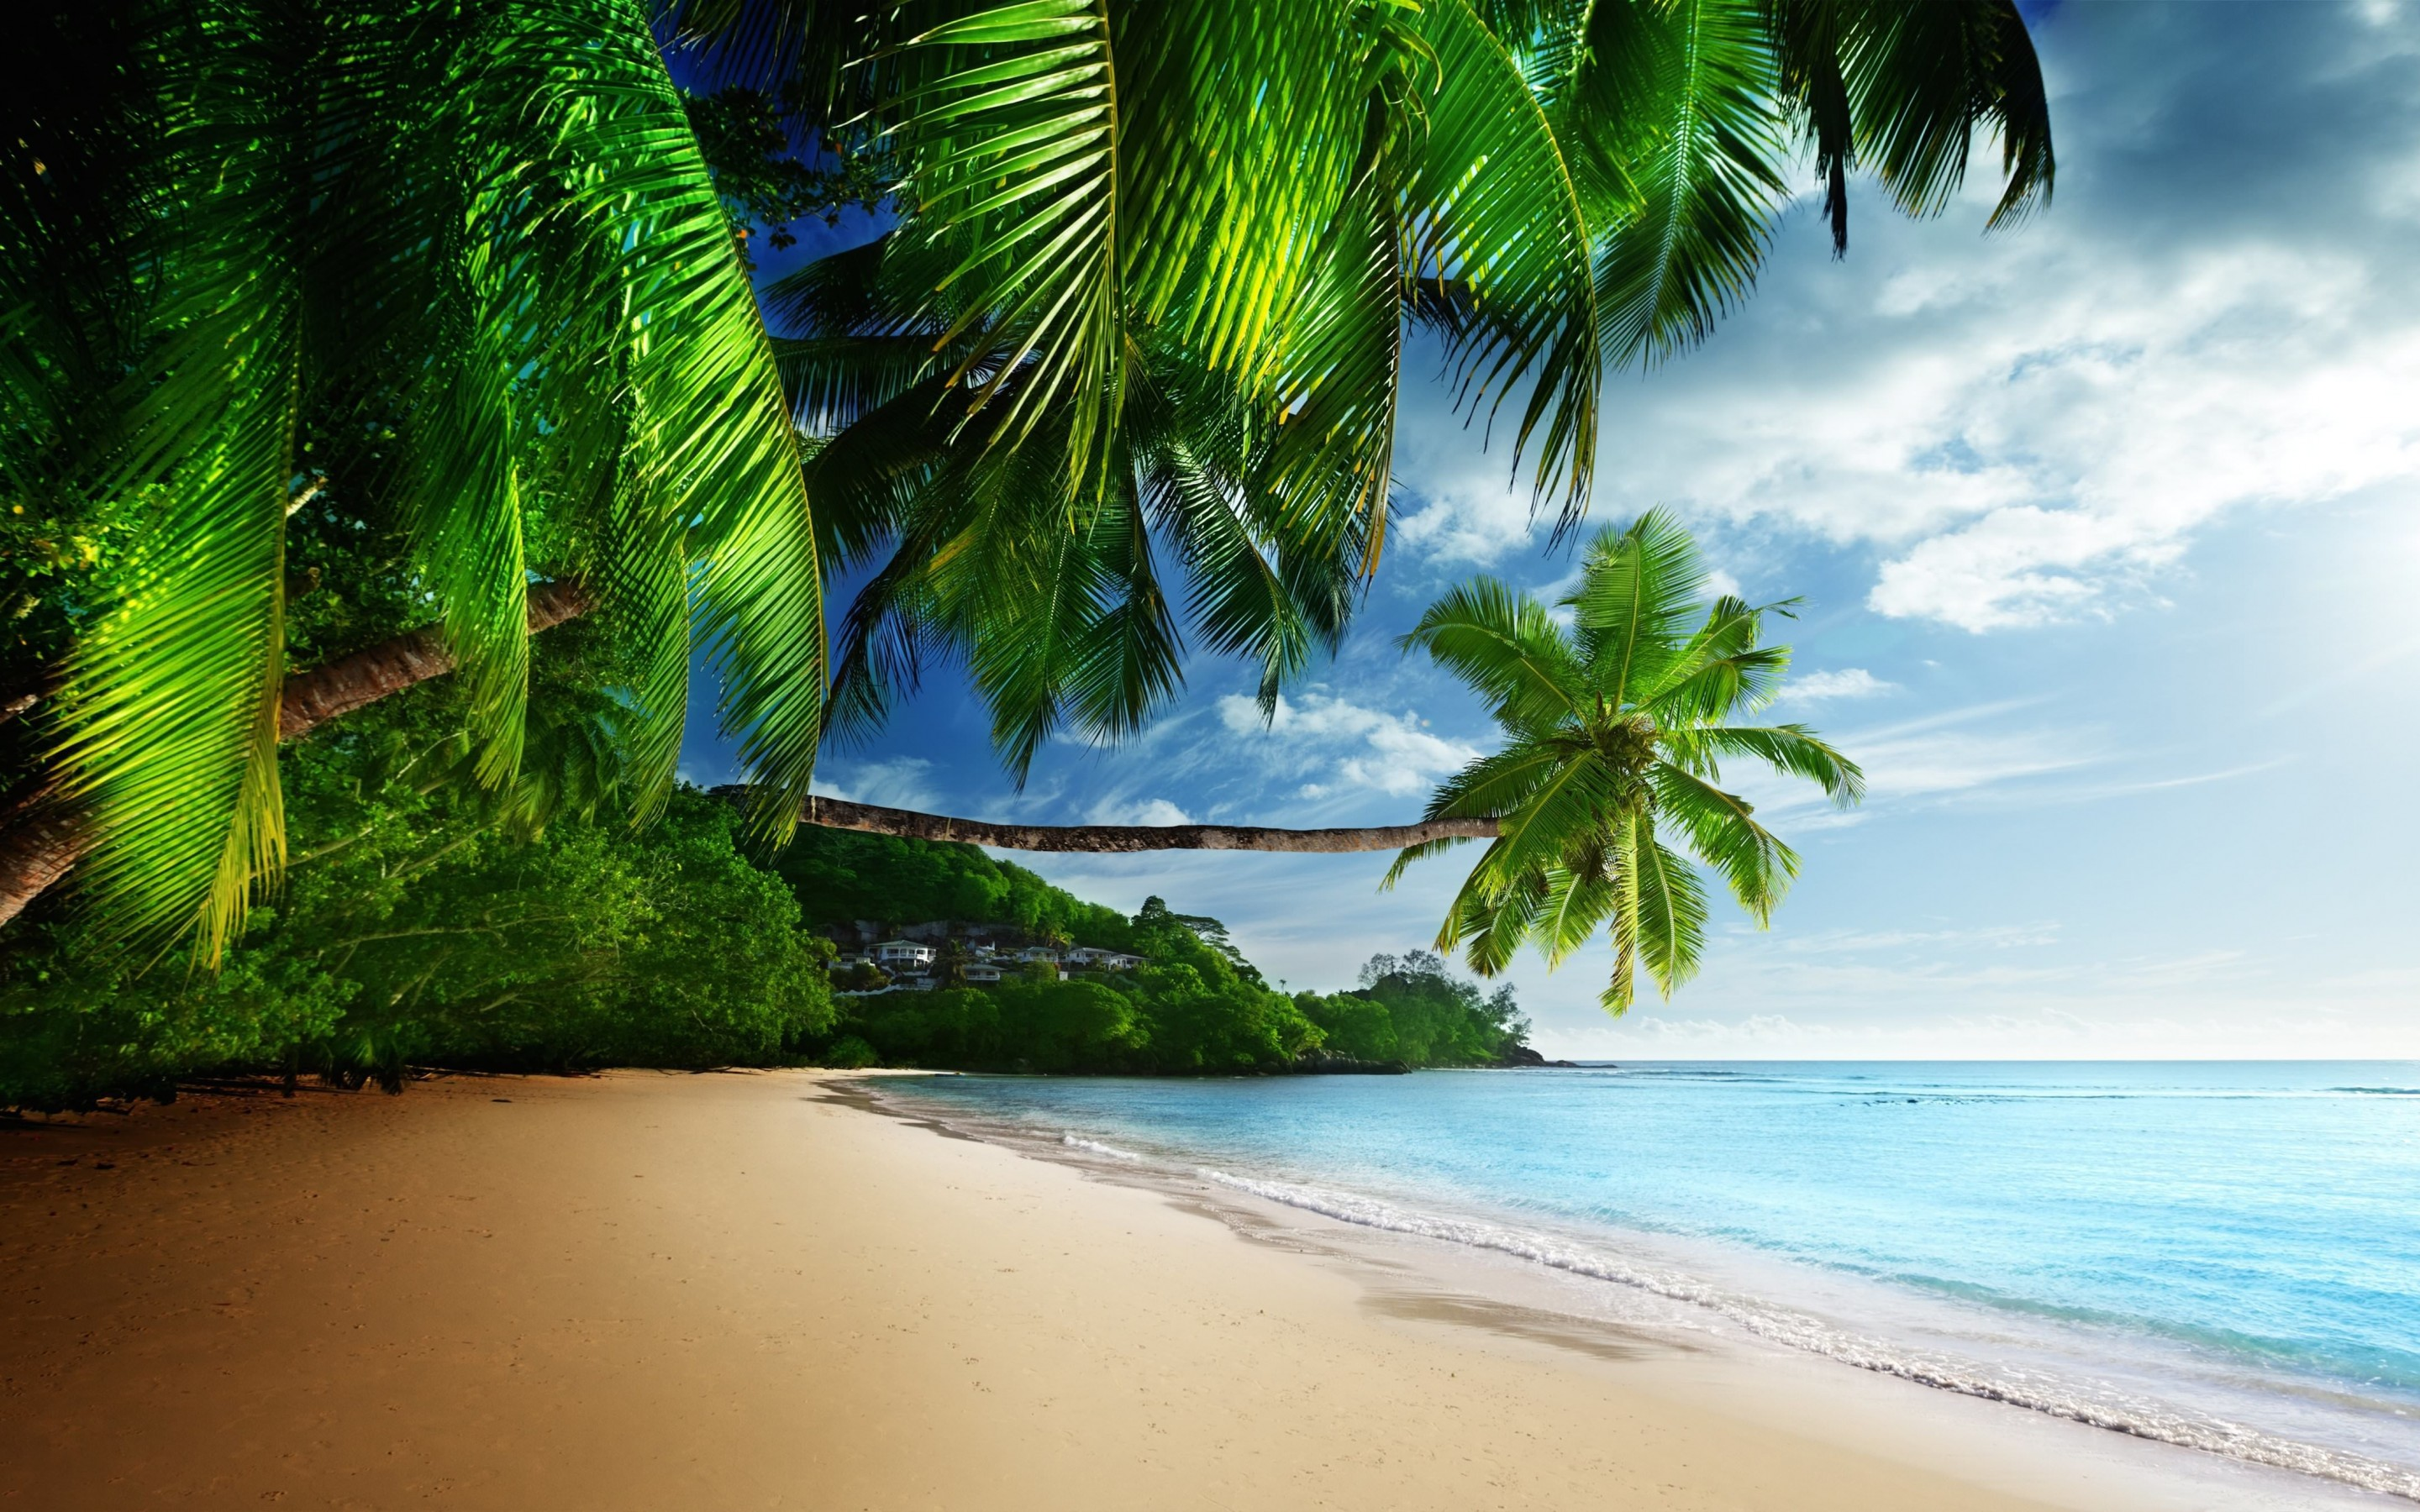 Tropical Paradise Beach Wallpaper for Desktop 2880x1800